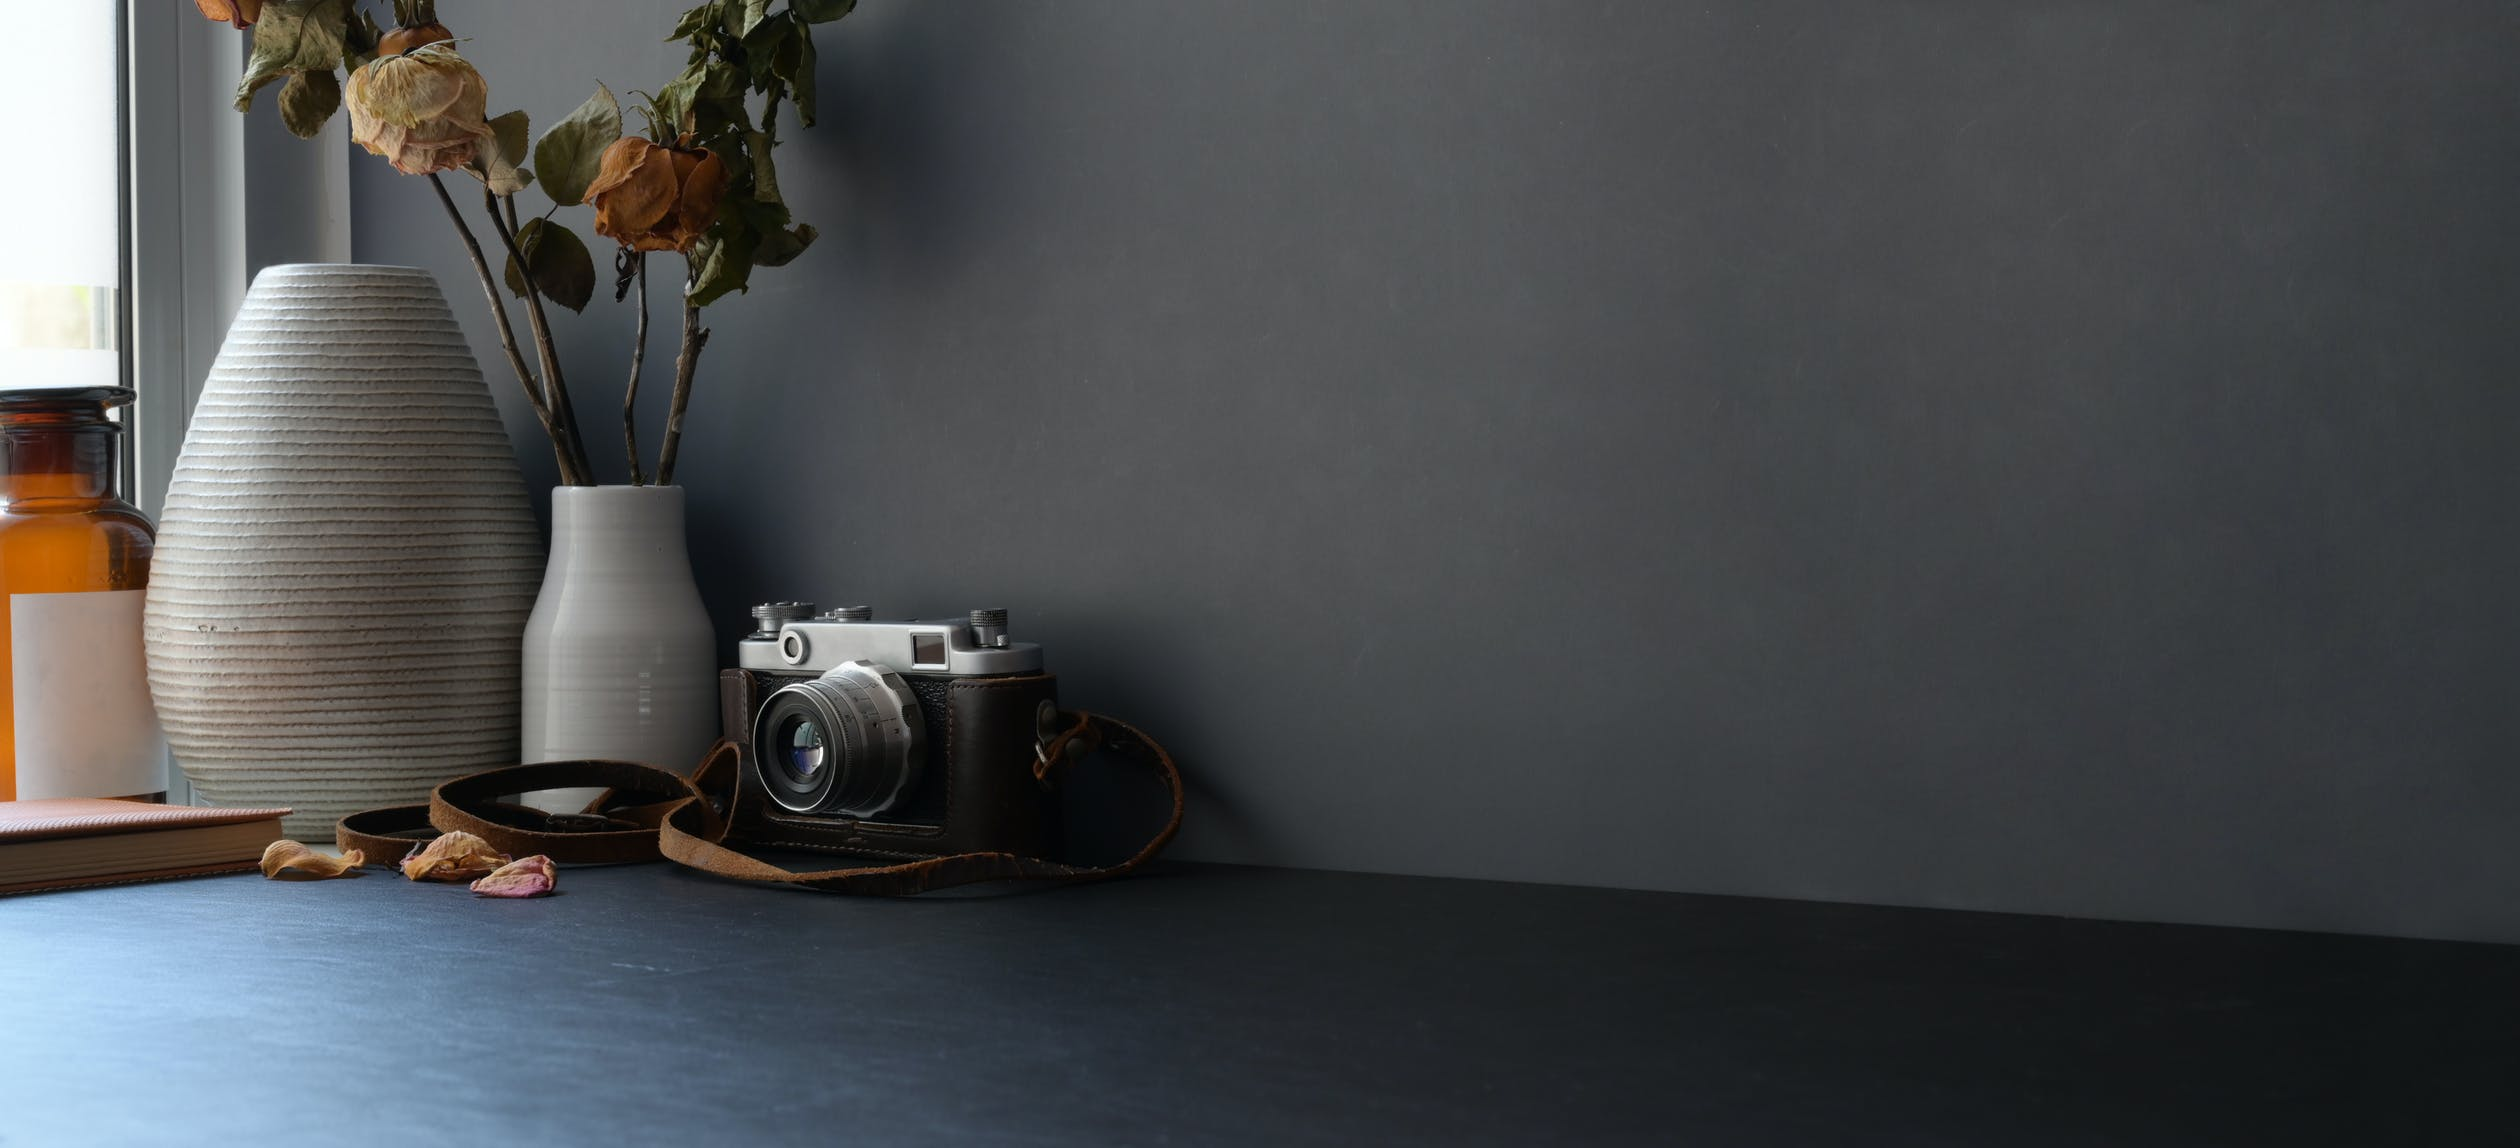 gray wall with a desk, camera, and flower pot